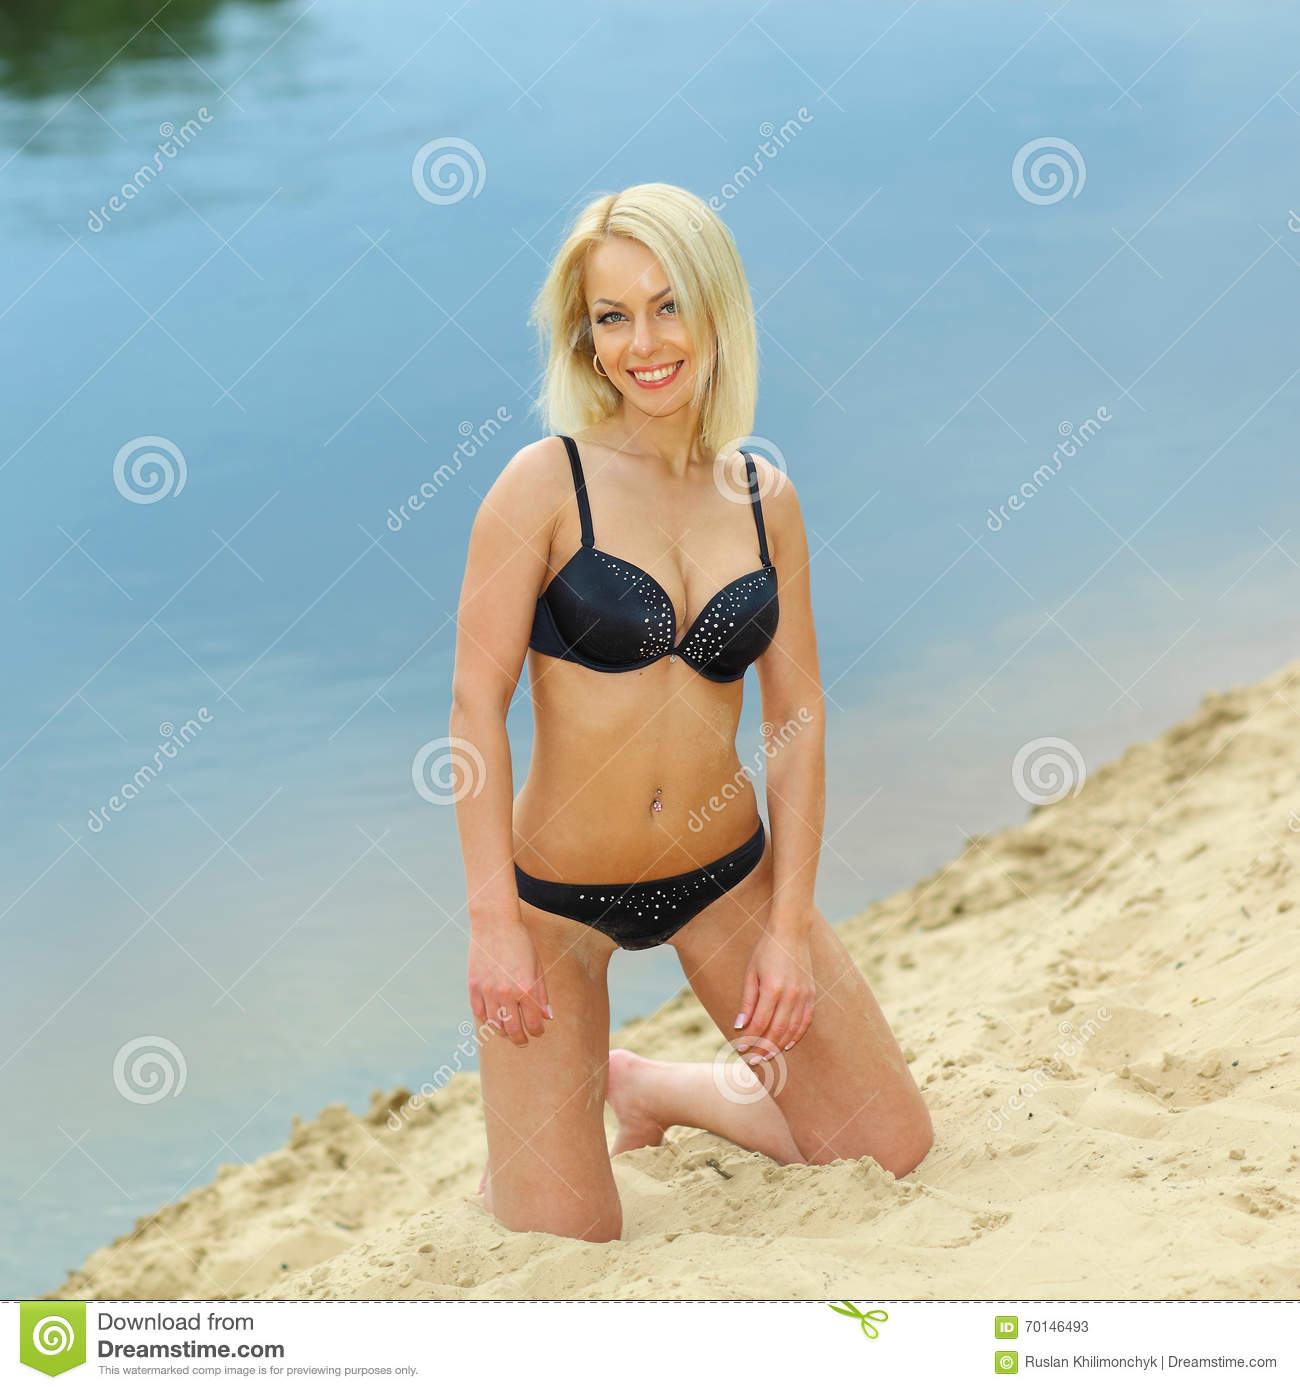 d8cccfa63051d Beautiful girl in a black bikini on the beach. Outdoor portrait of tanned girl  having fun on sun